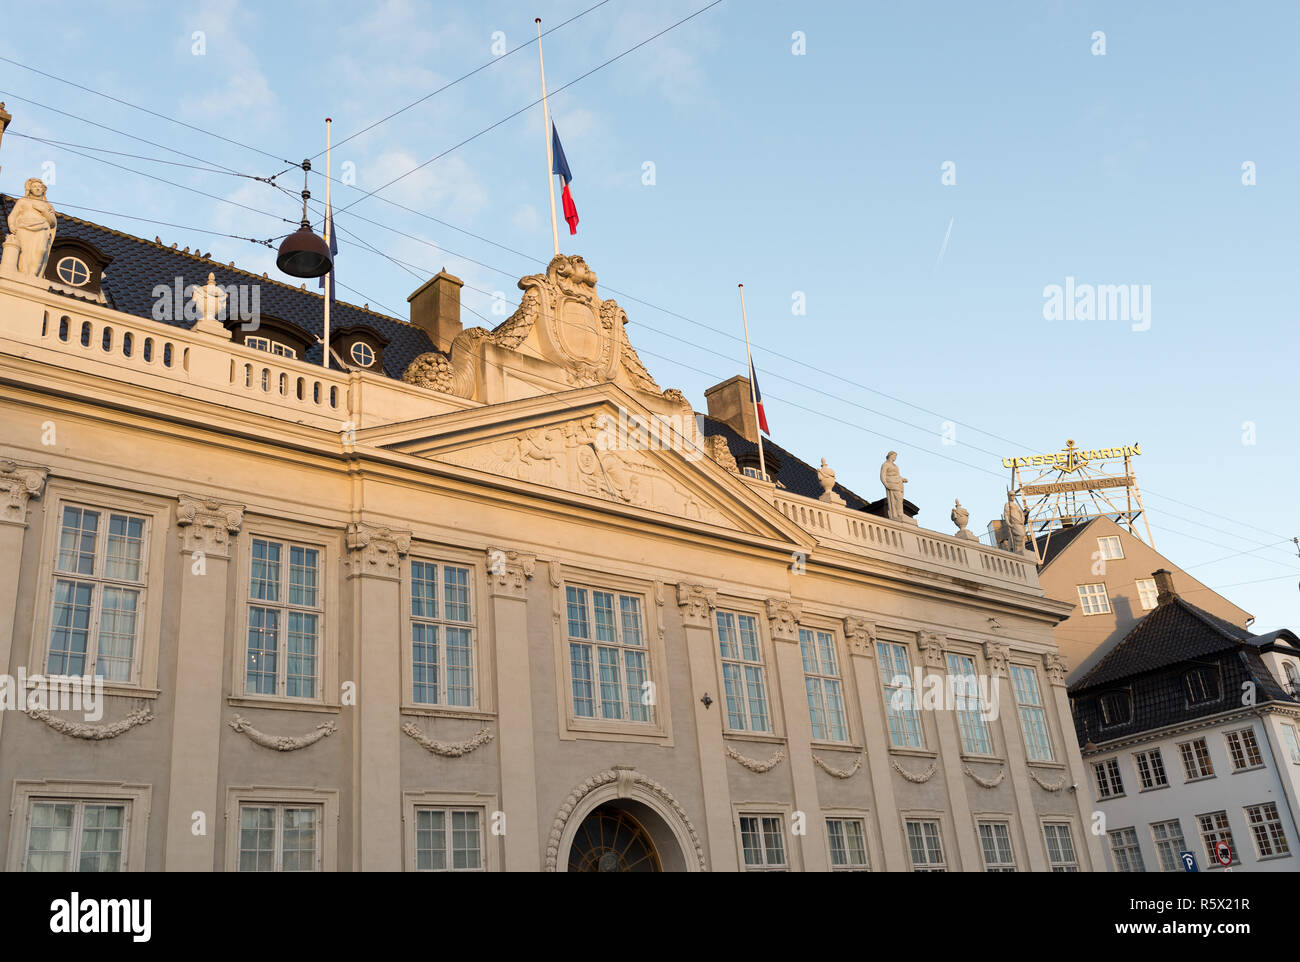 The Embassy of France in Copenhagen after the November 2015 shootings with flag on half-staff - Stock Image